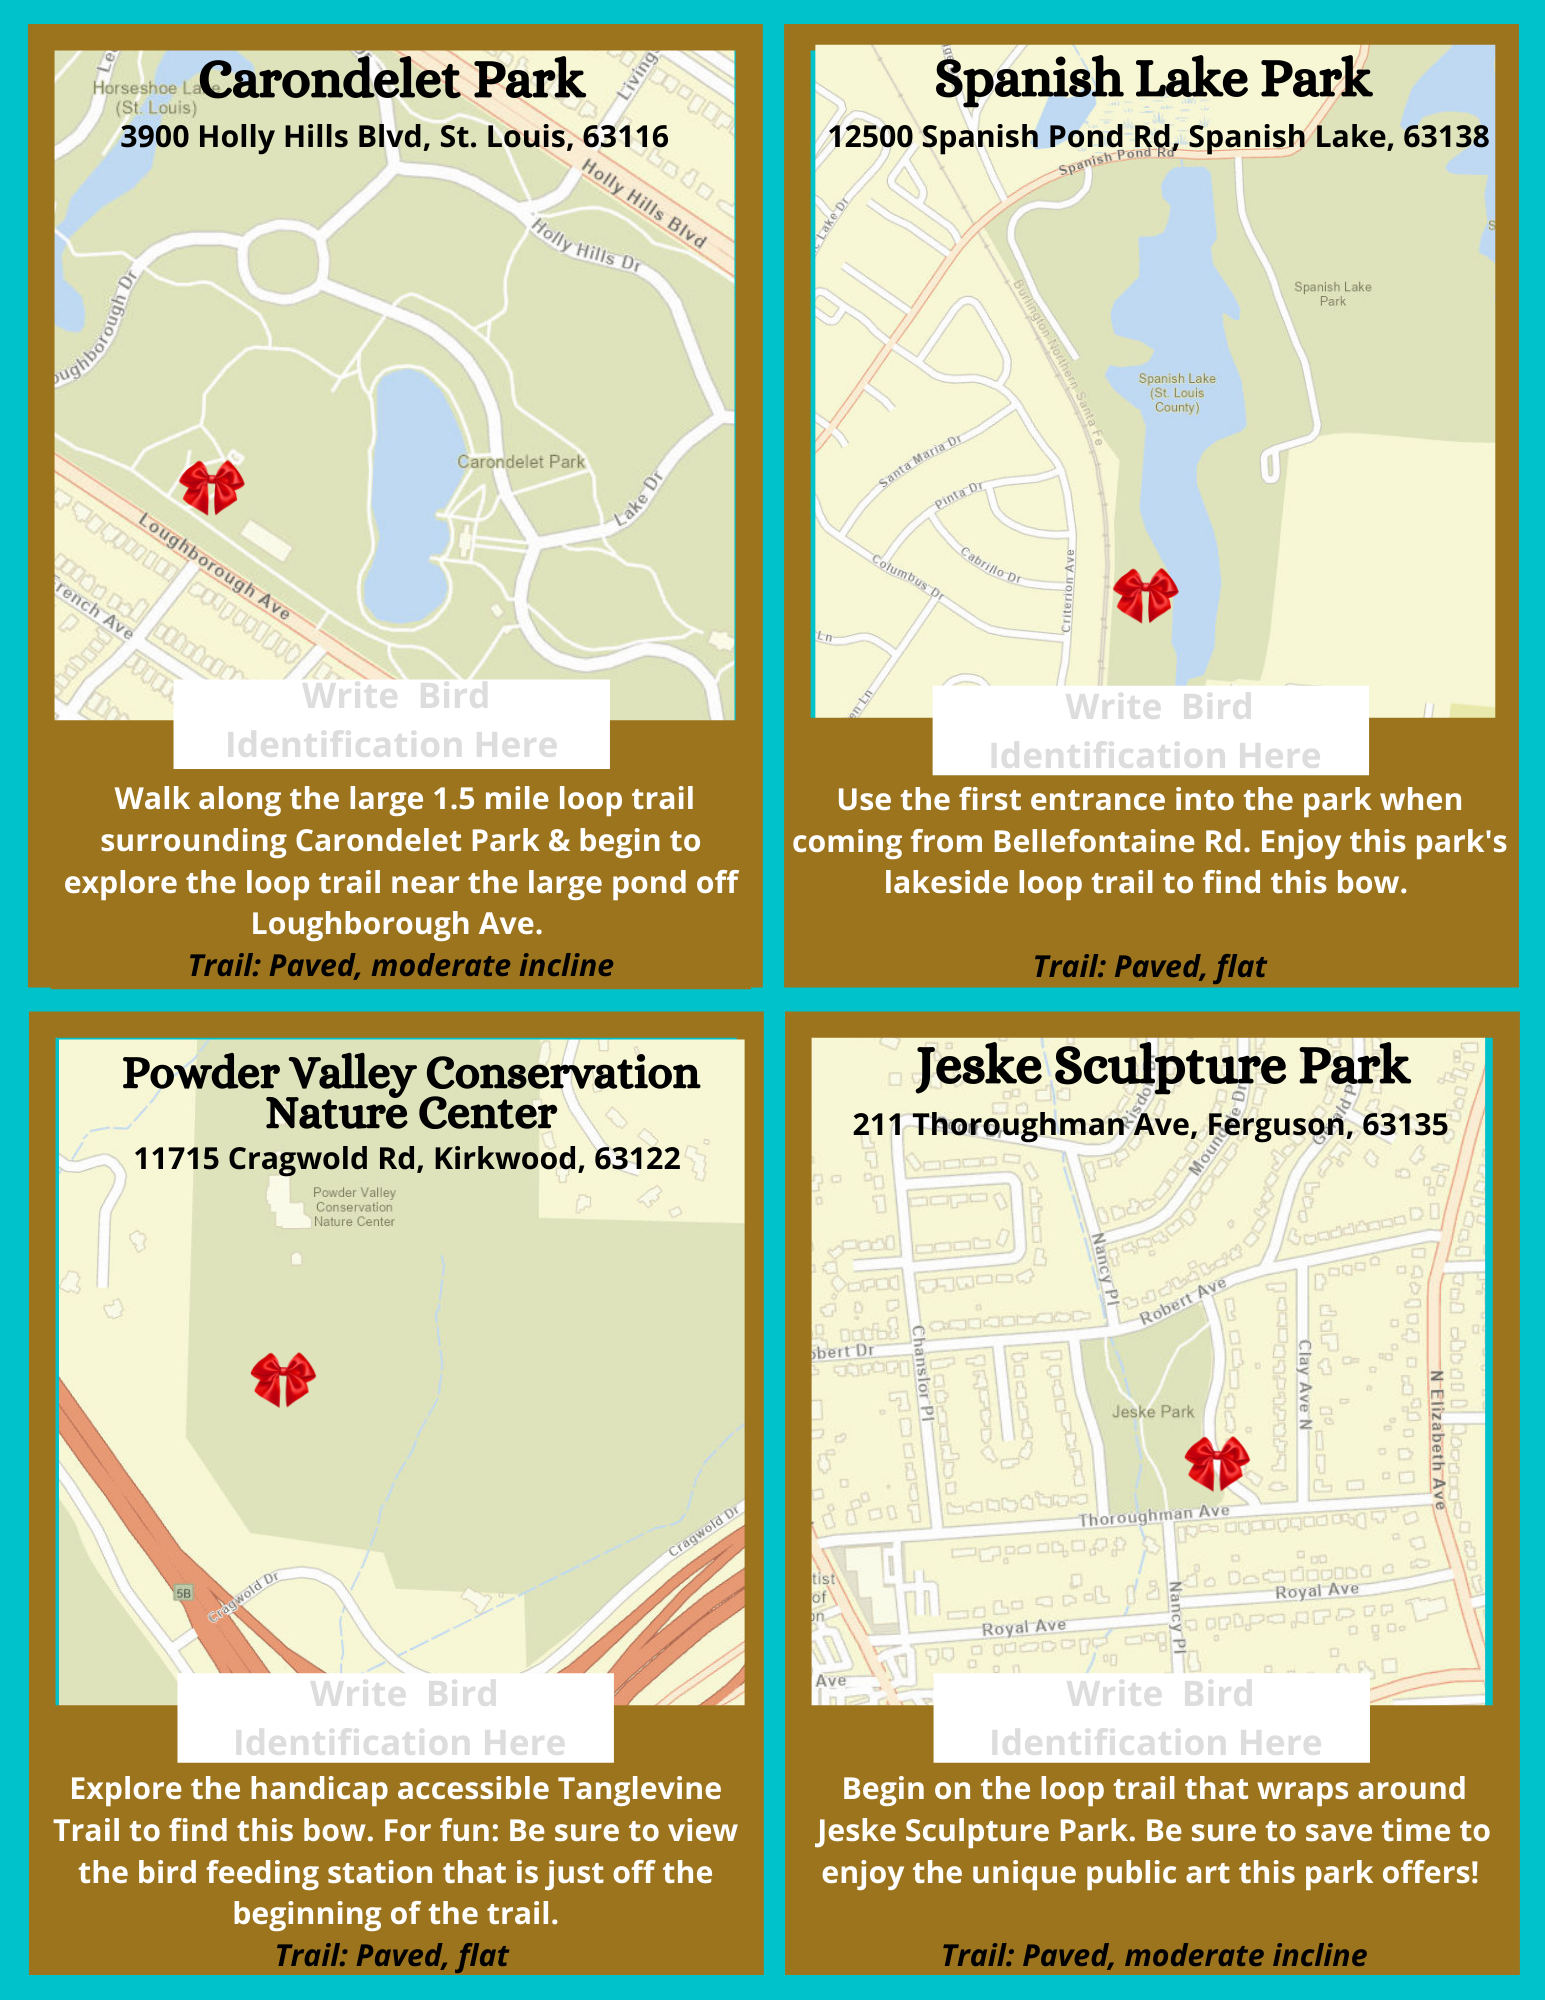 Map overview of four Bows for Birds locations including Carondolet Park, Jeske Sculpture Park, Spanish Lake Park and Powder Valley Conservation Nature Center.